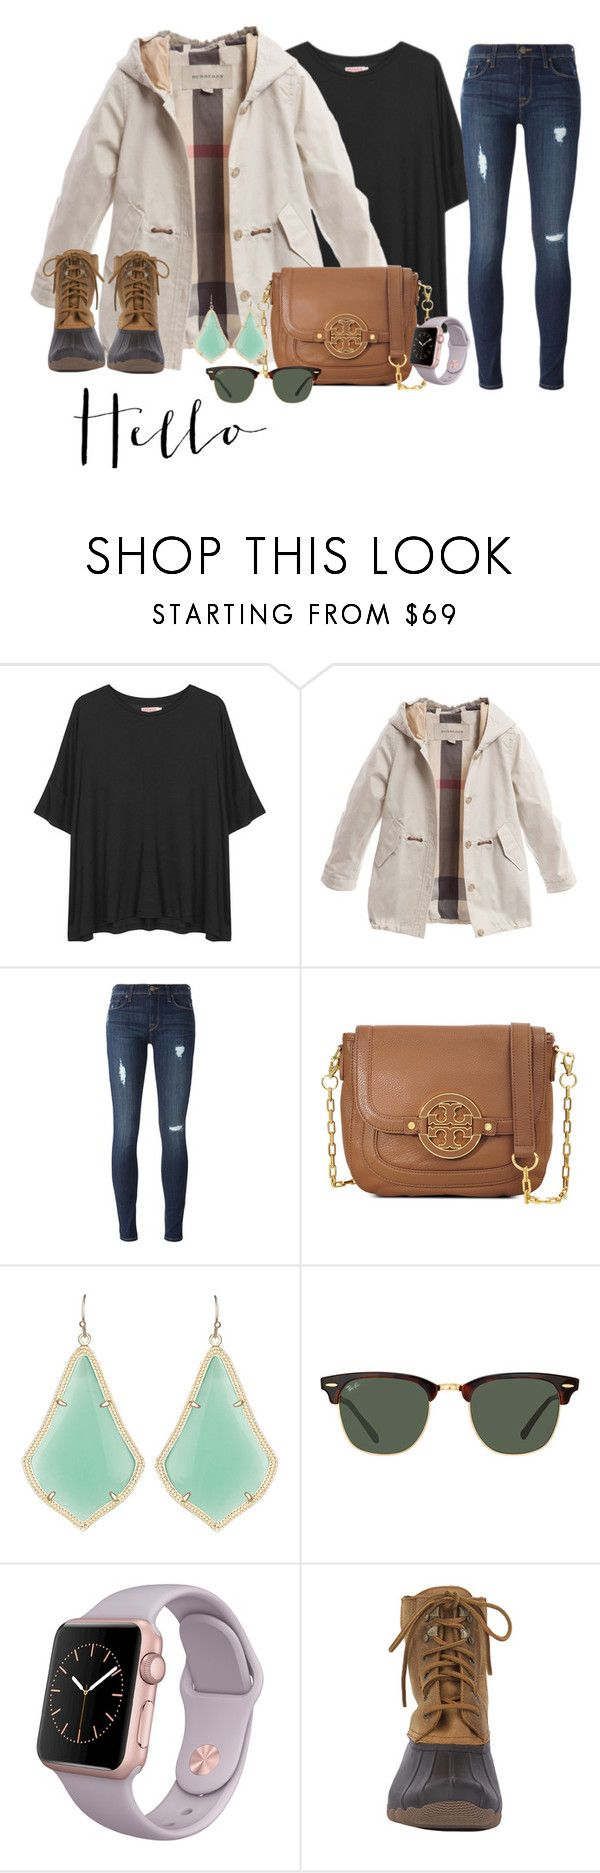 """Helllo February ❤️"" by emily-ta ❤ liked on Polyvore featuring Organic by John Patrick, Burberry, Hudson, Tory Burch, Kendra Scott, Ray-Ban, Sperry Top-Sider, women's clothing, women and female"